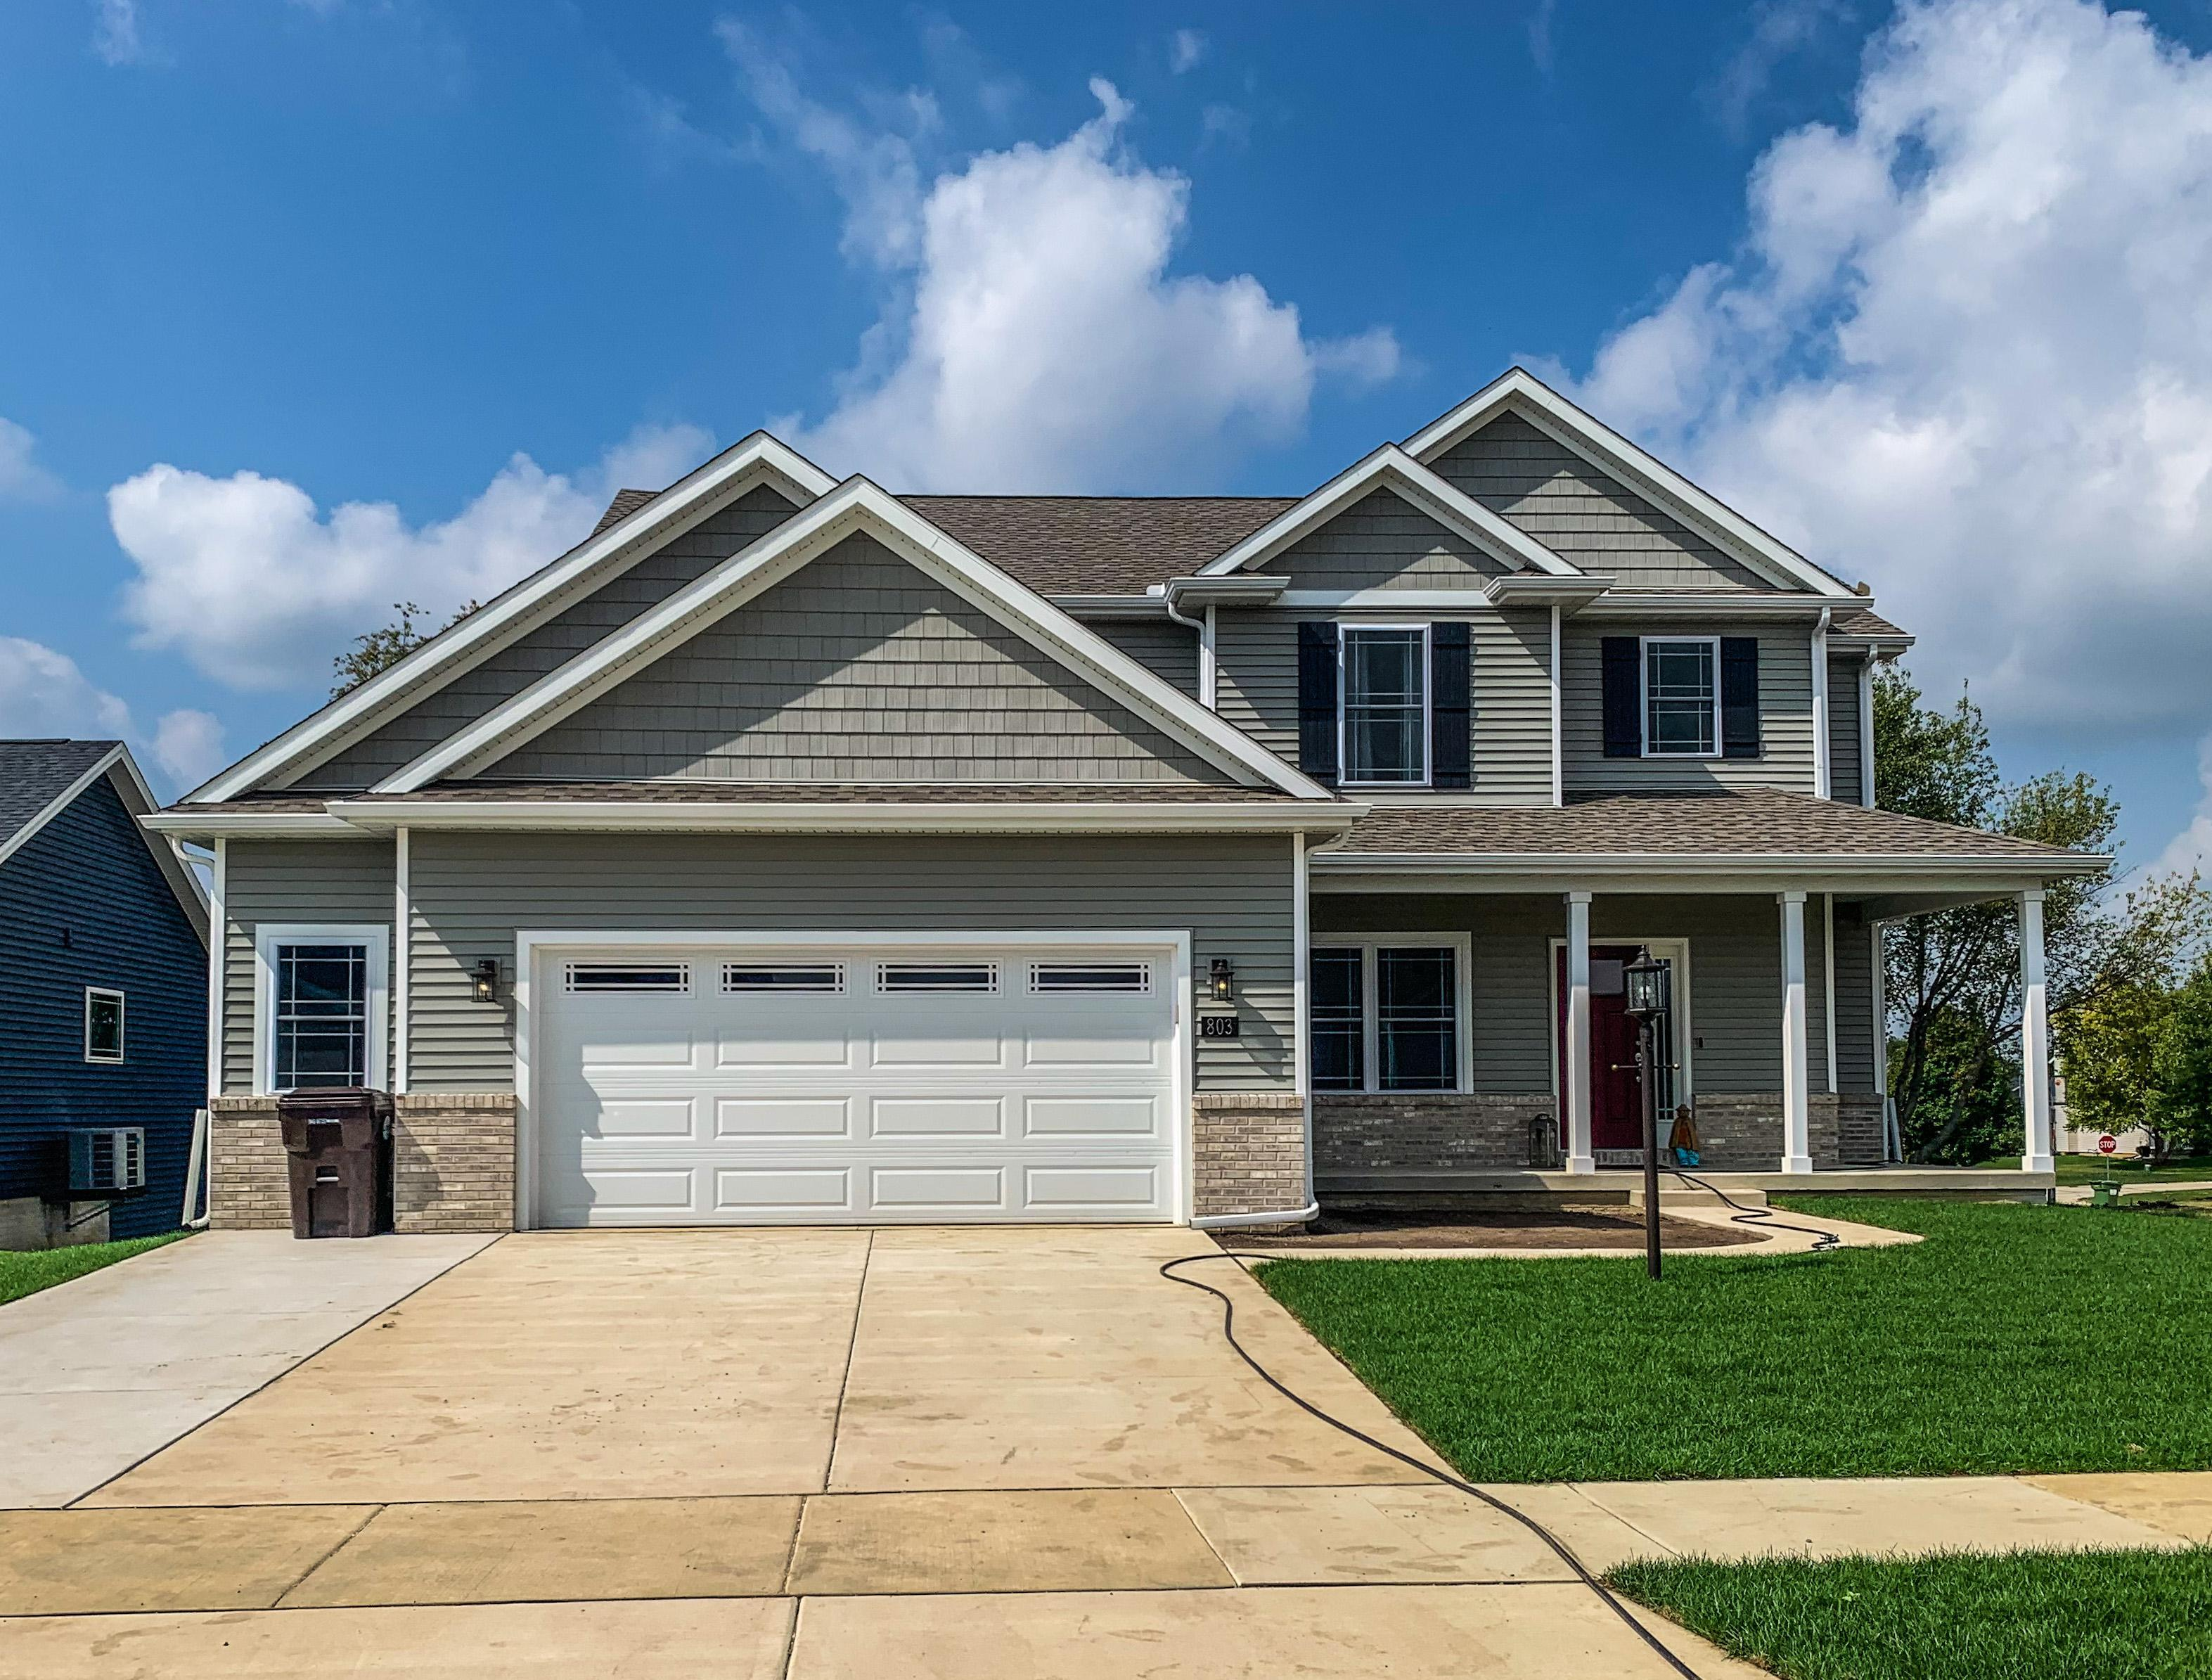 'Hunters Ridge' by Unlimited Homes in Champaign-Urbana